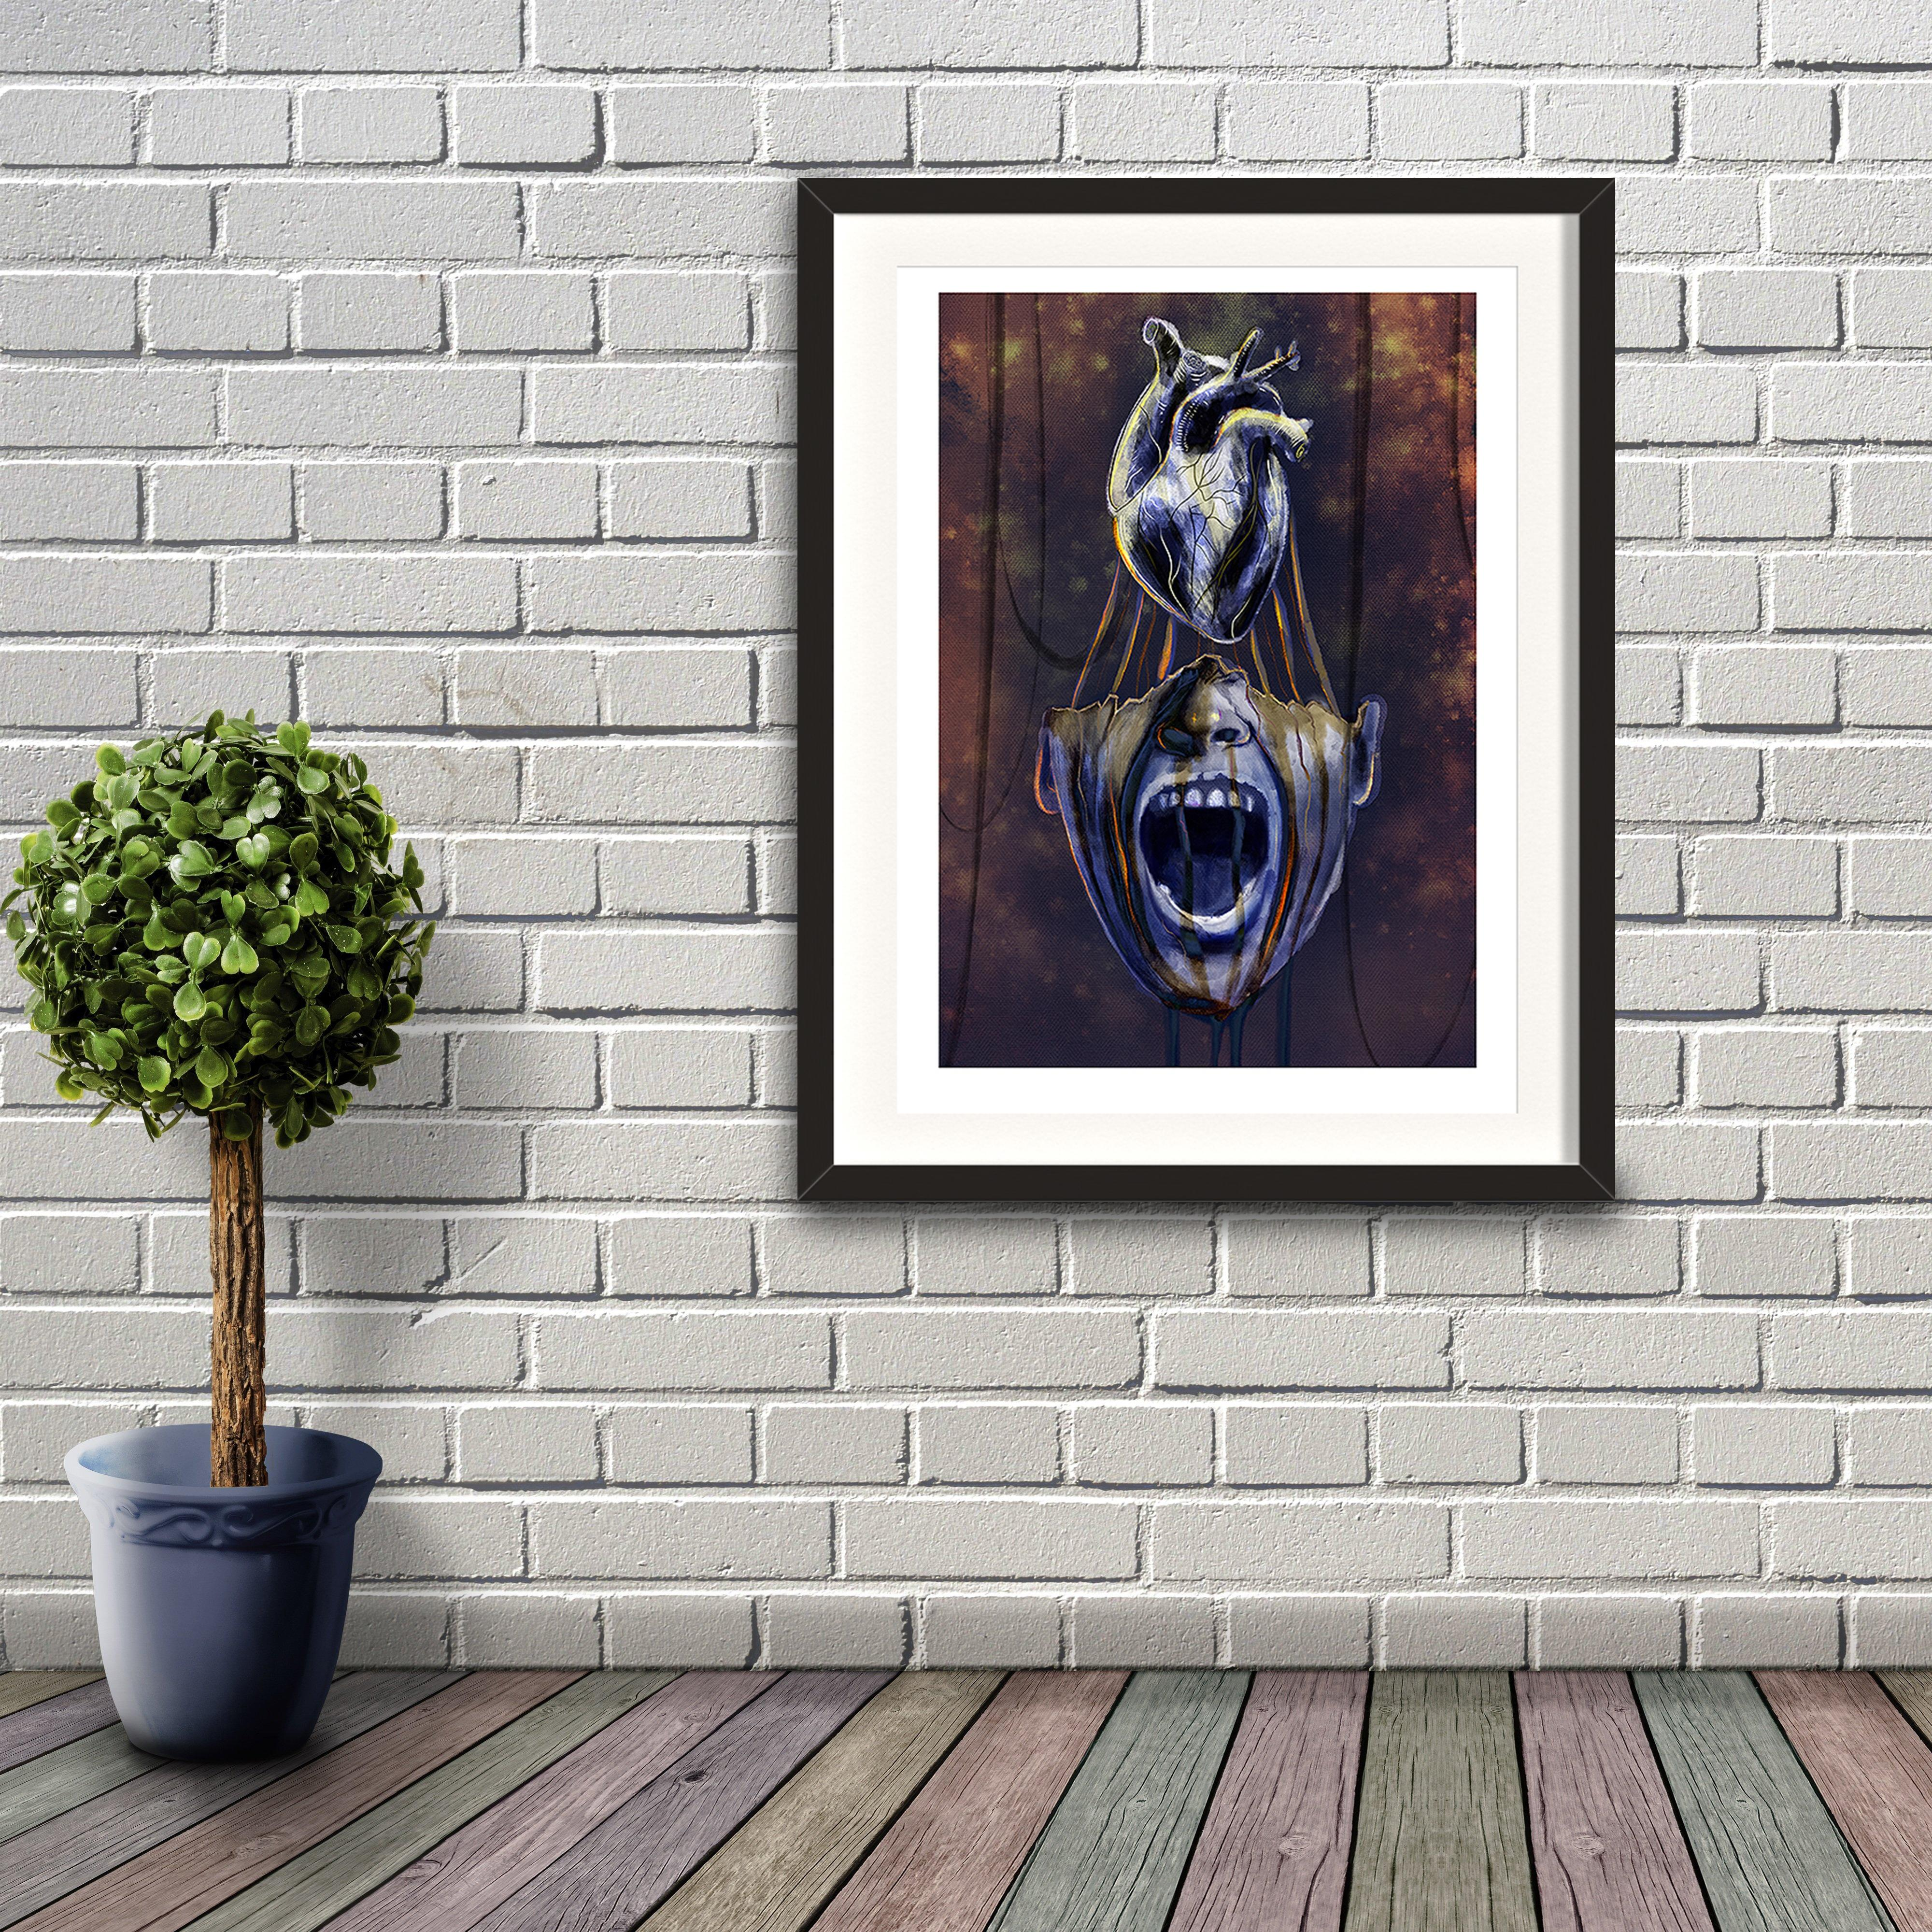 A digital painting by Lily Bourne printed on eco fine art paper titled Mind Of Midas showing an open mouth of King Midas with his heart above his head. Artwork is shown in a black frame hanging on a brick wall.